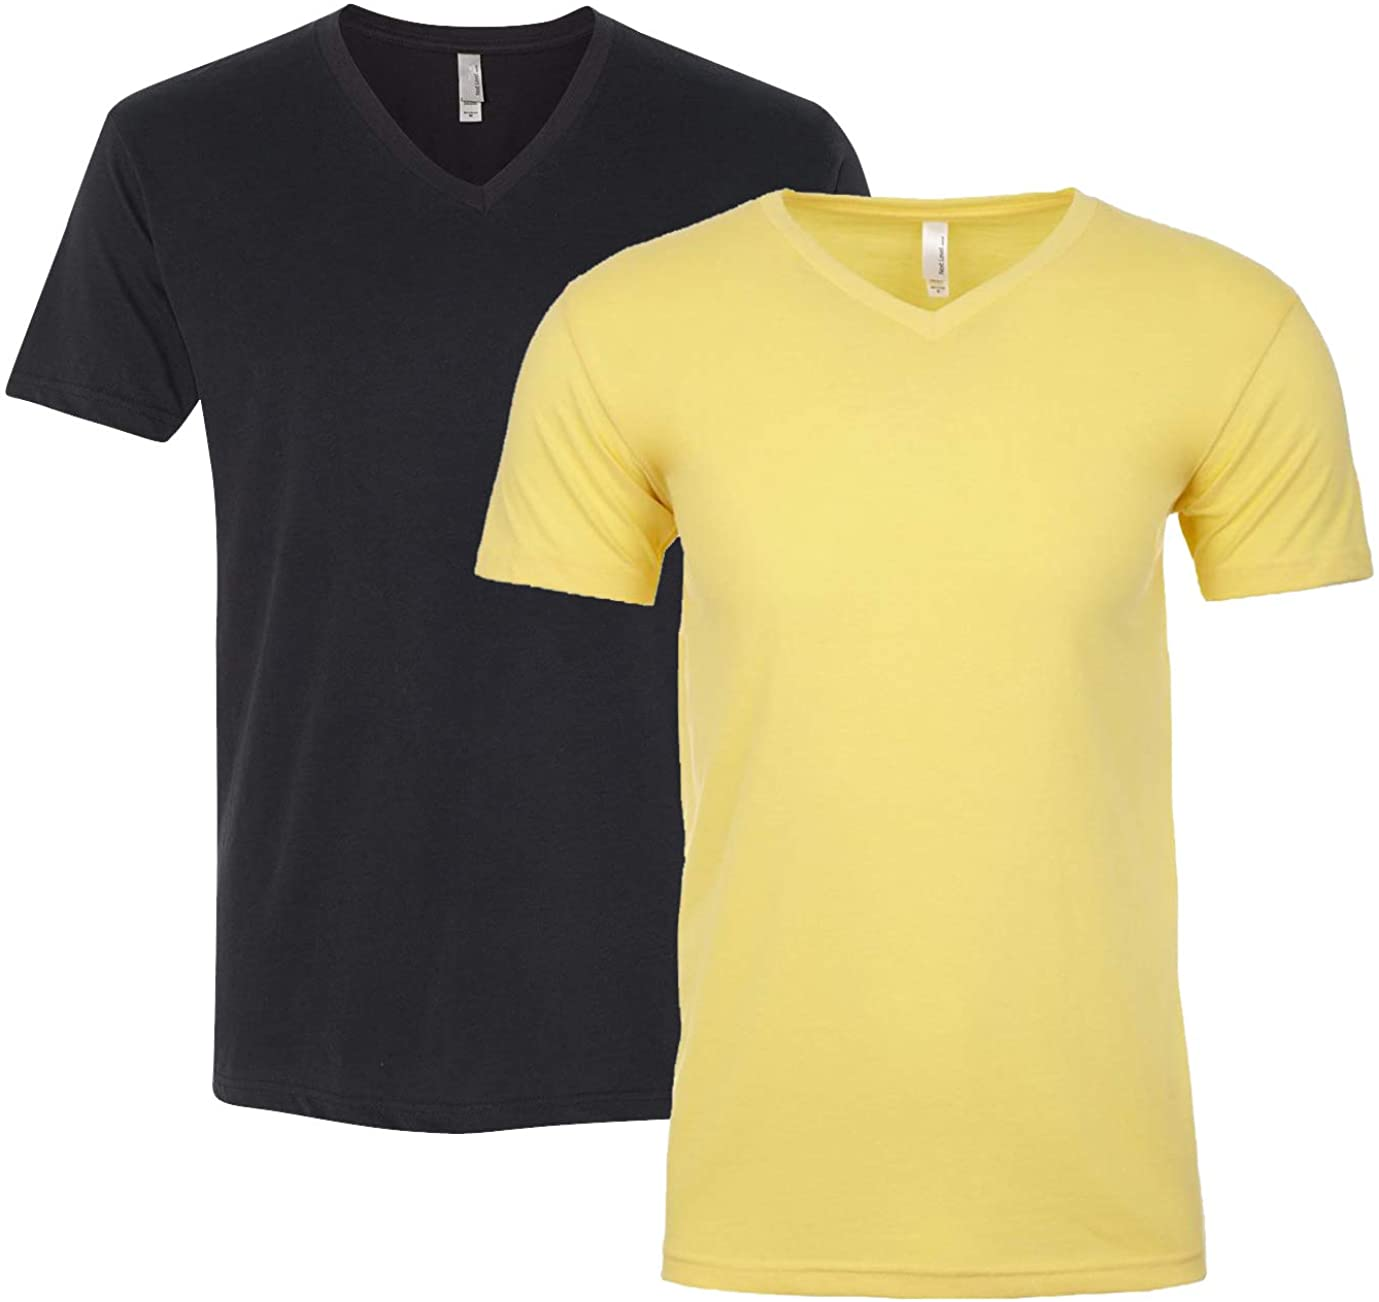 Next Level Apparel 6440 Mens Premium Fitted Suided V-Neck, Black + Banana Cream (2 Shirts)-XX-Large